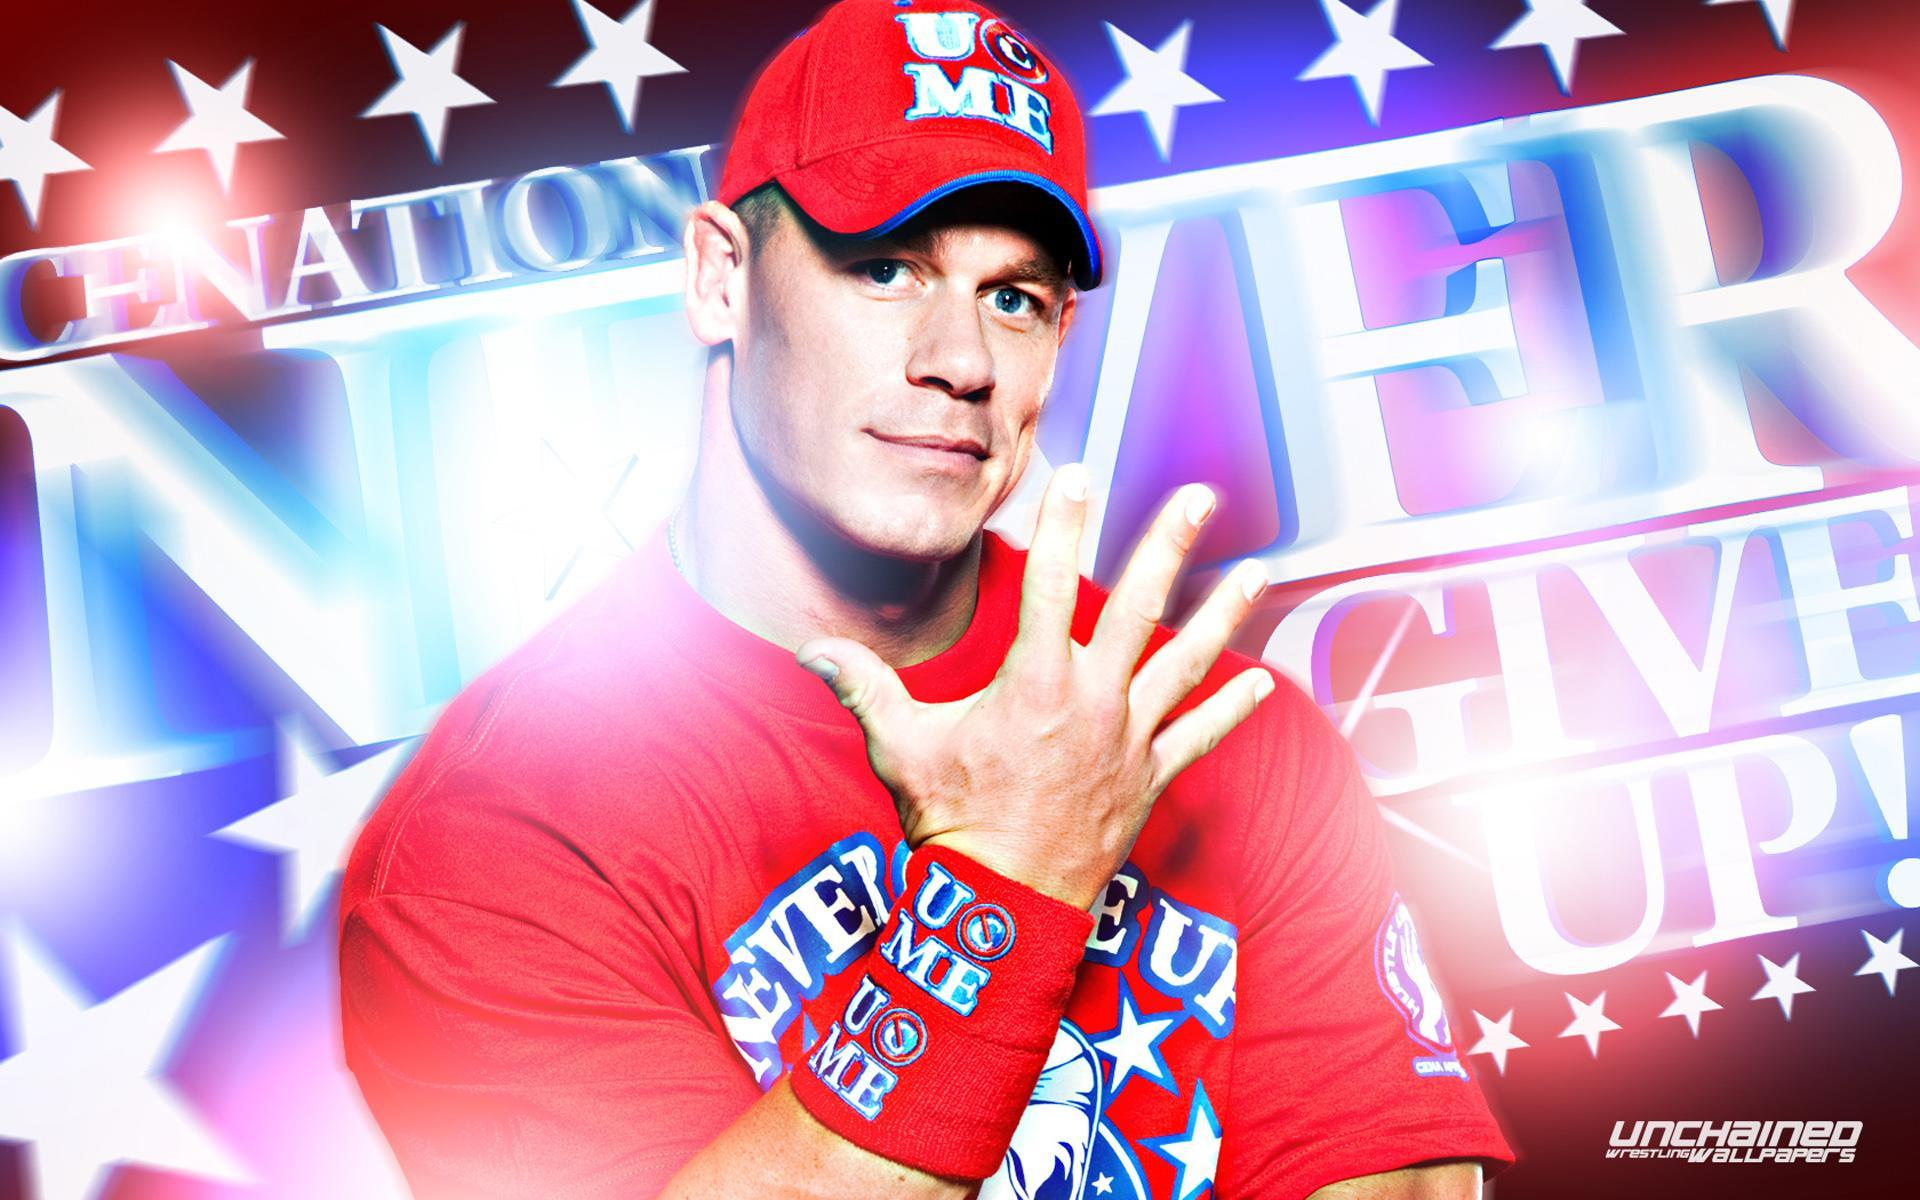 John-Cena-Find-best-latest-John-Cena-for-your-PC-desktop-background-mobile-pho-wallpaper-wp3407620